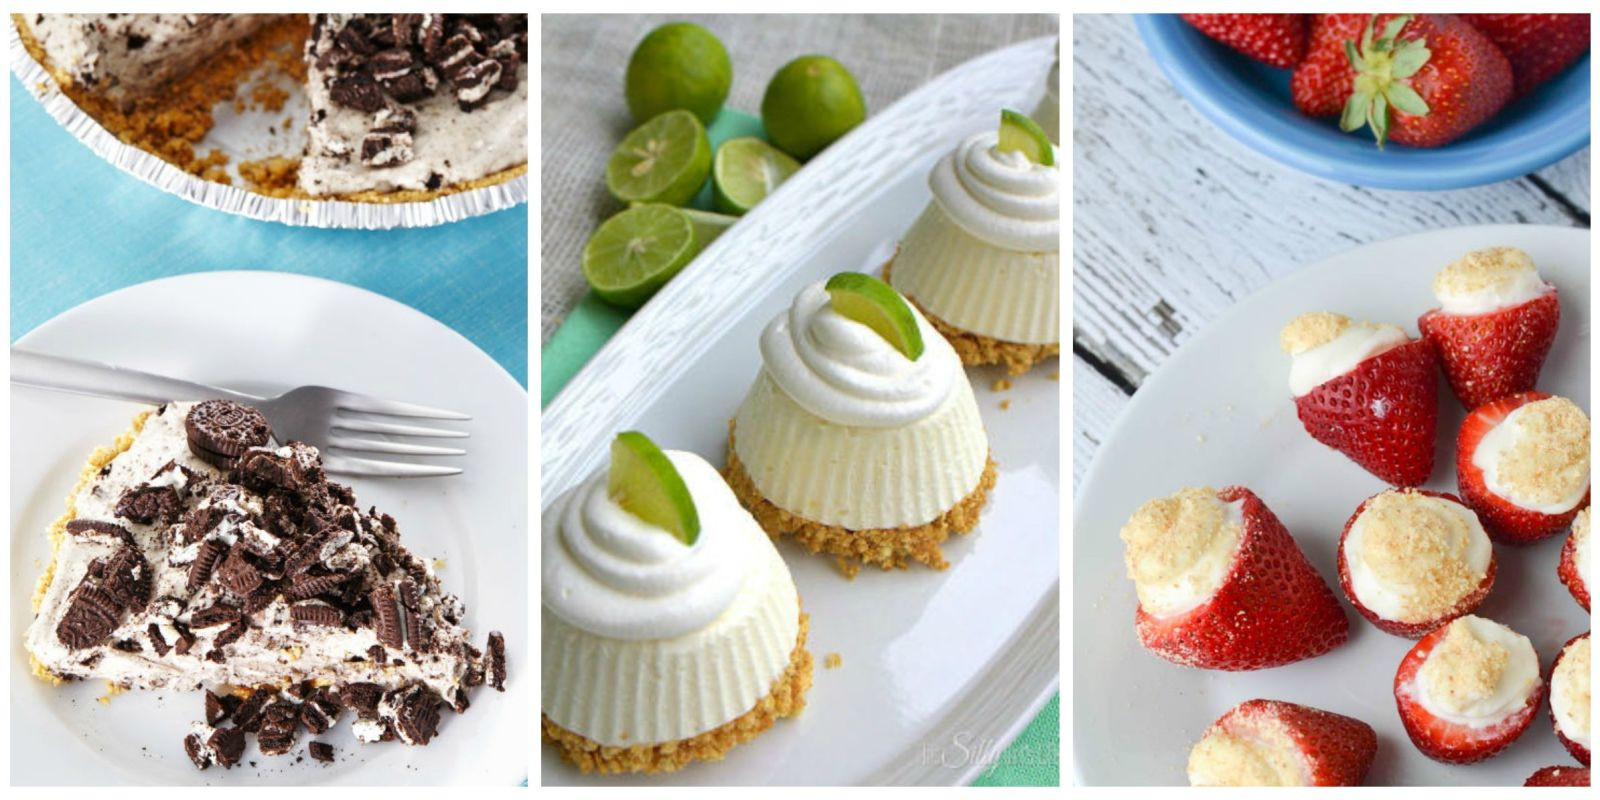 Summer Dessert Ideas  57 Easy Summer Desserts Best Recipes for Frozen Summer